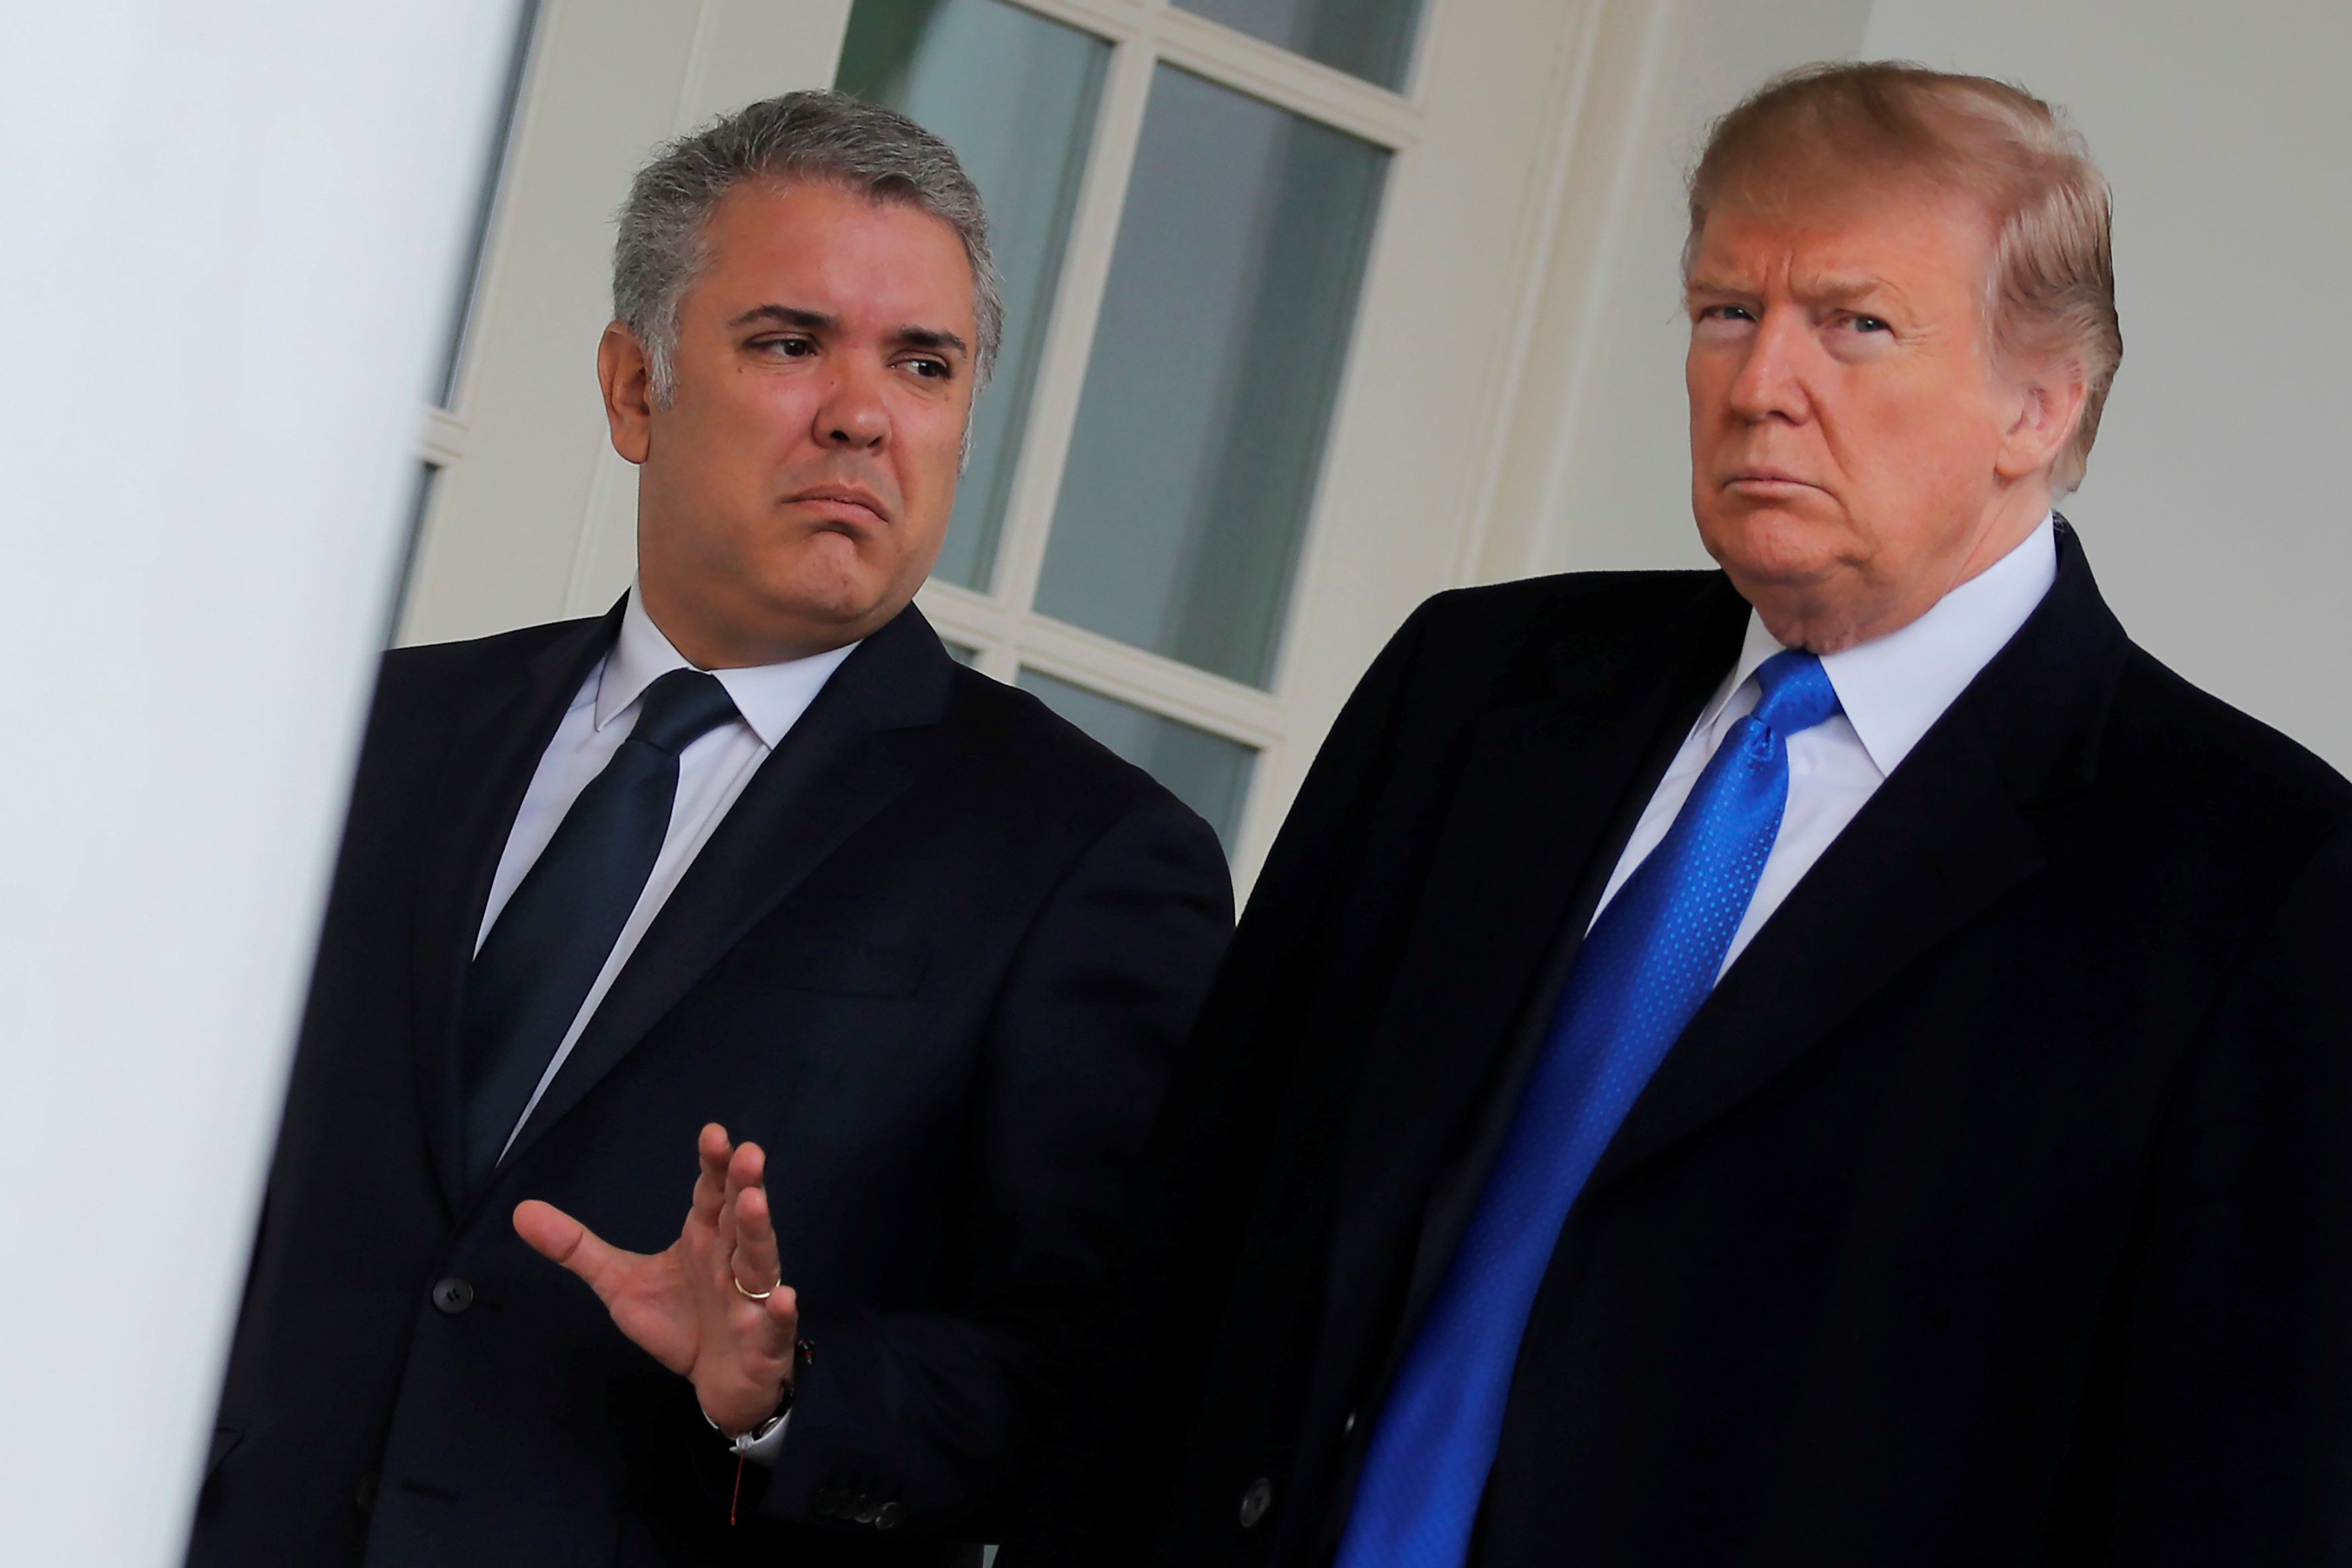 U.S. President Donald Trump walks with Colombian President Ivan Duque at the White House in Washington, U.S., February 13, 2019. REUTERS/Carlos Barria